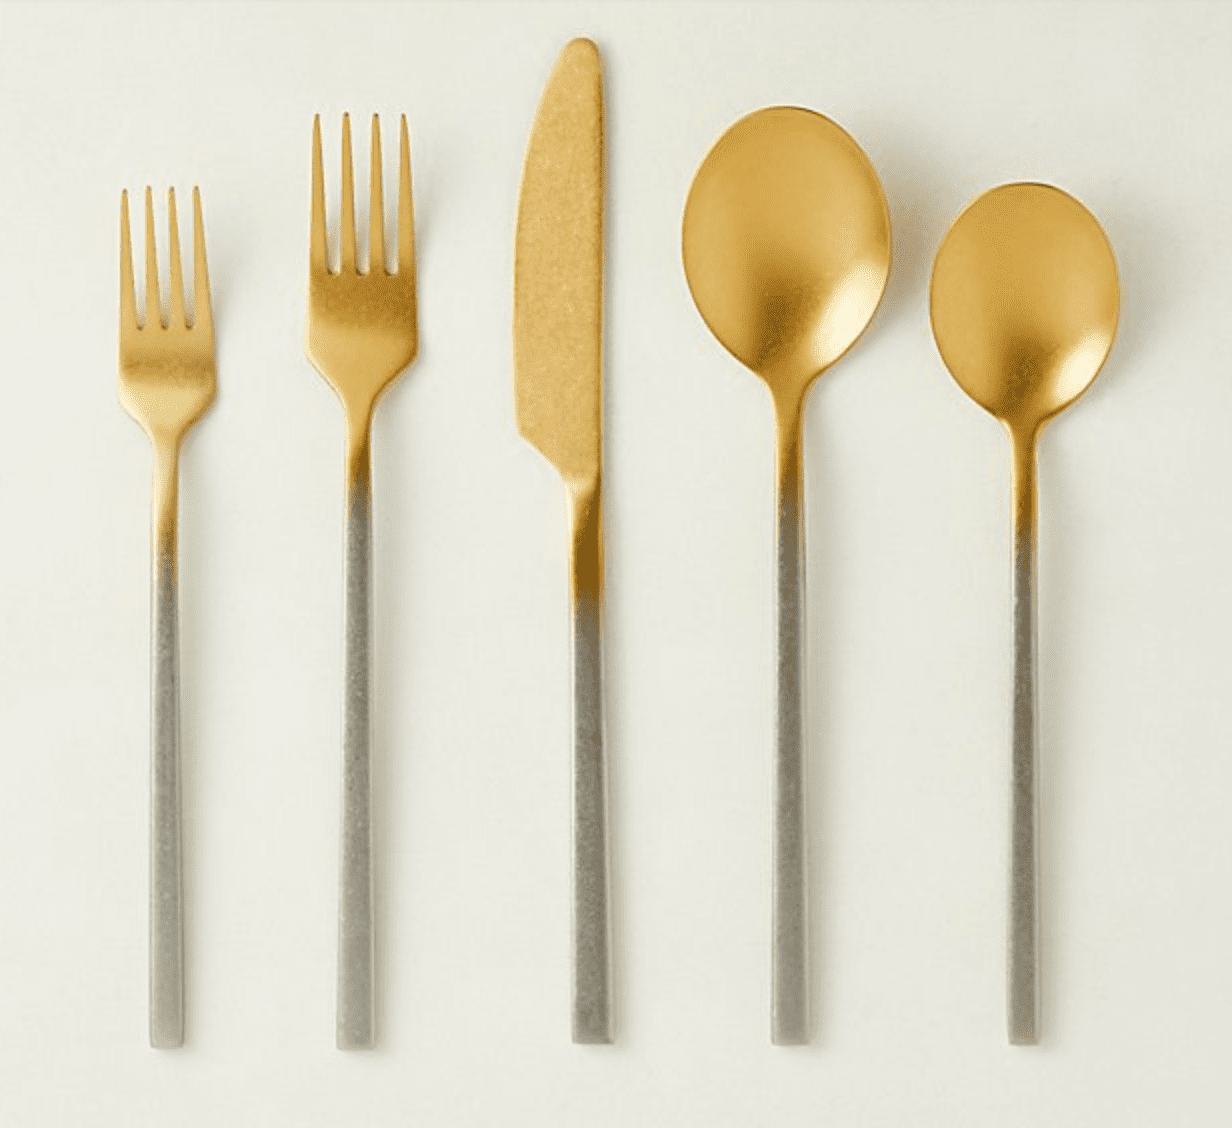 20-PIECE PIN TUMBLED TWO-TONE FLATWARE SET